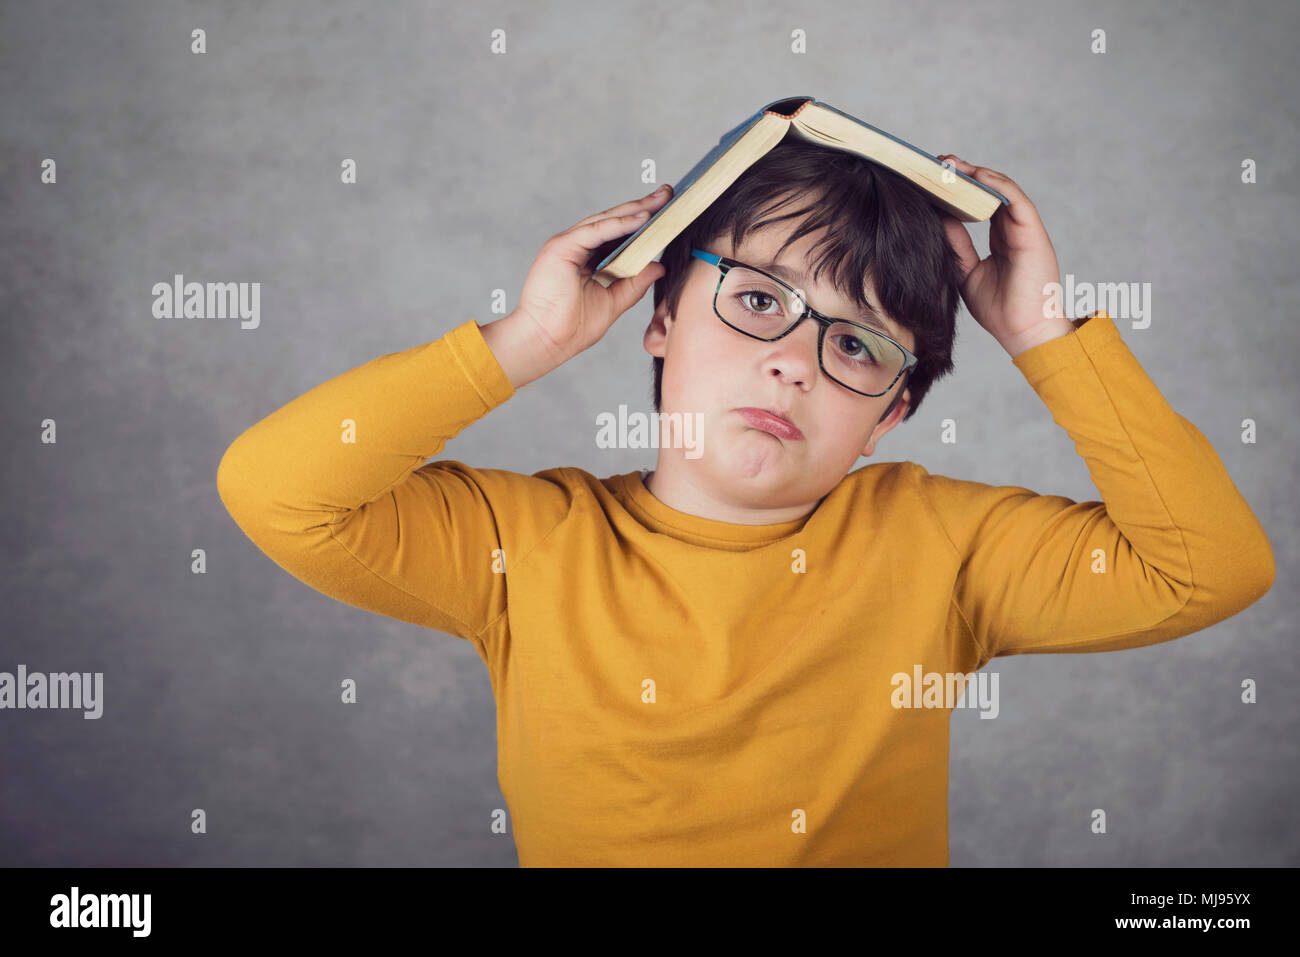 sad and pensive boy with a book on his head on gray background - Stock Image